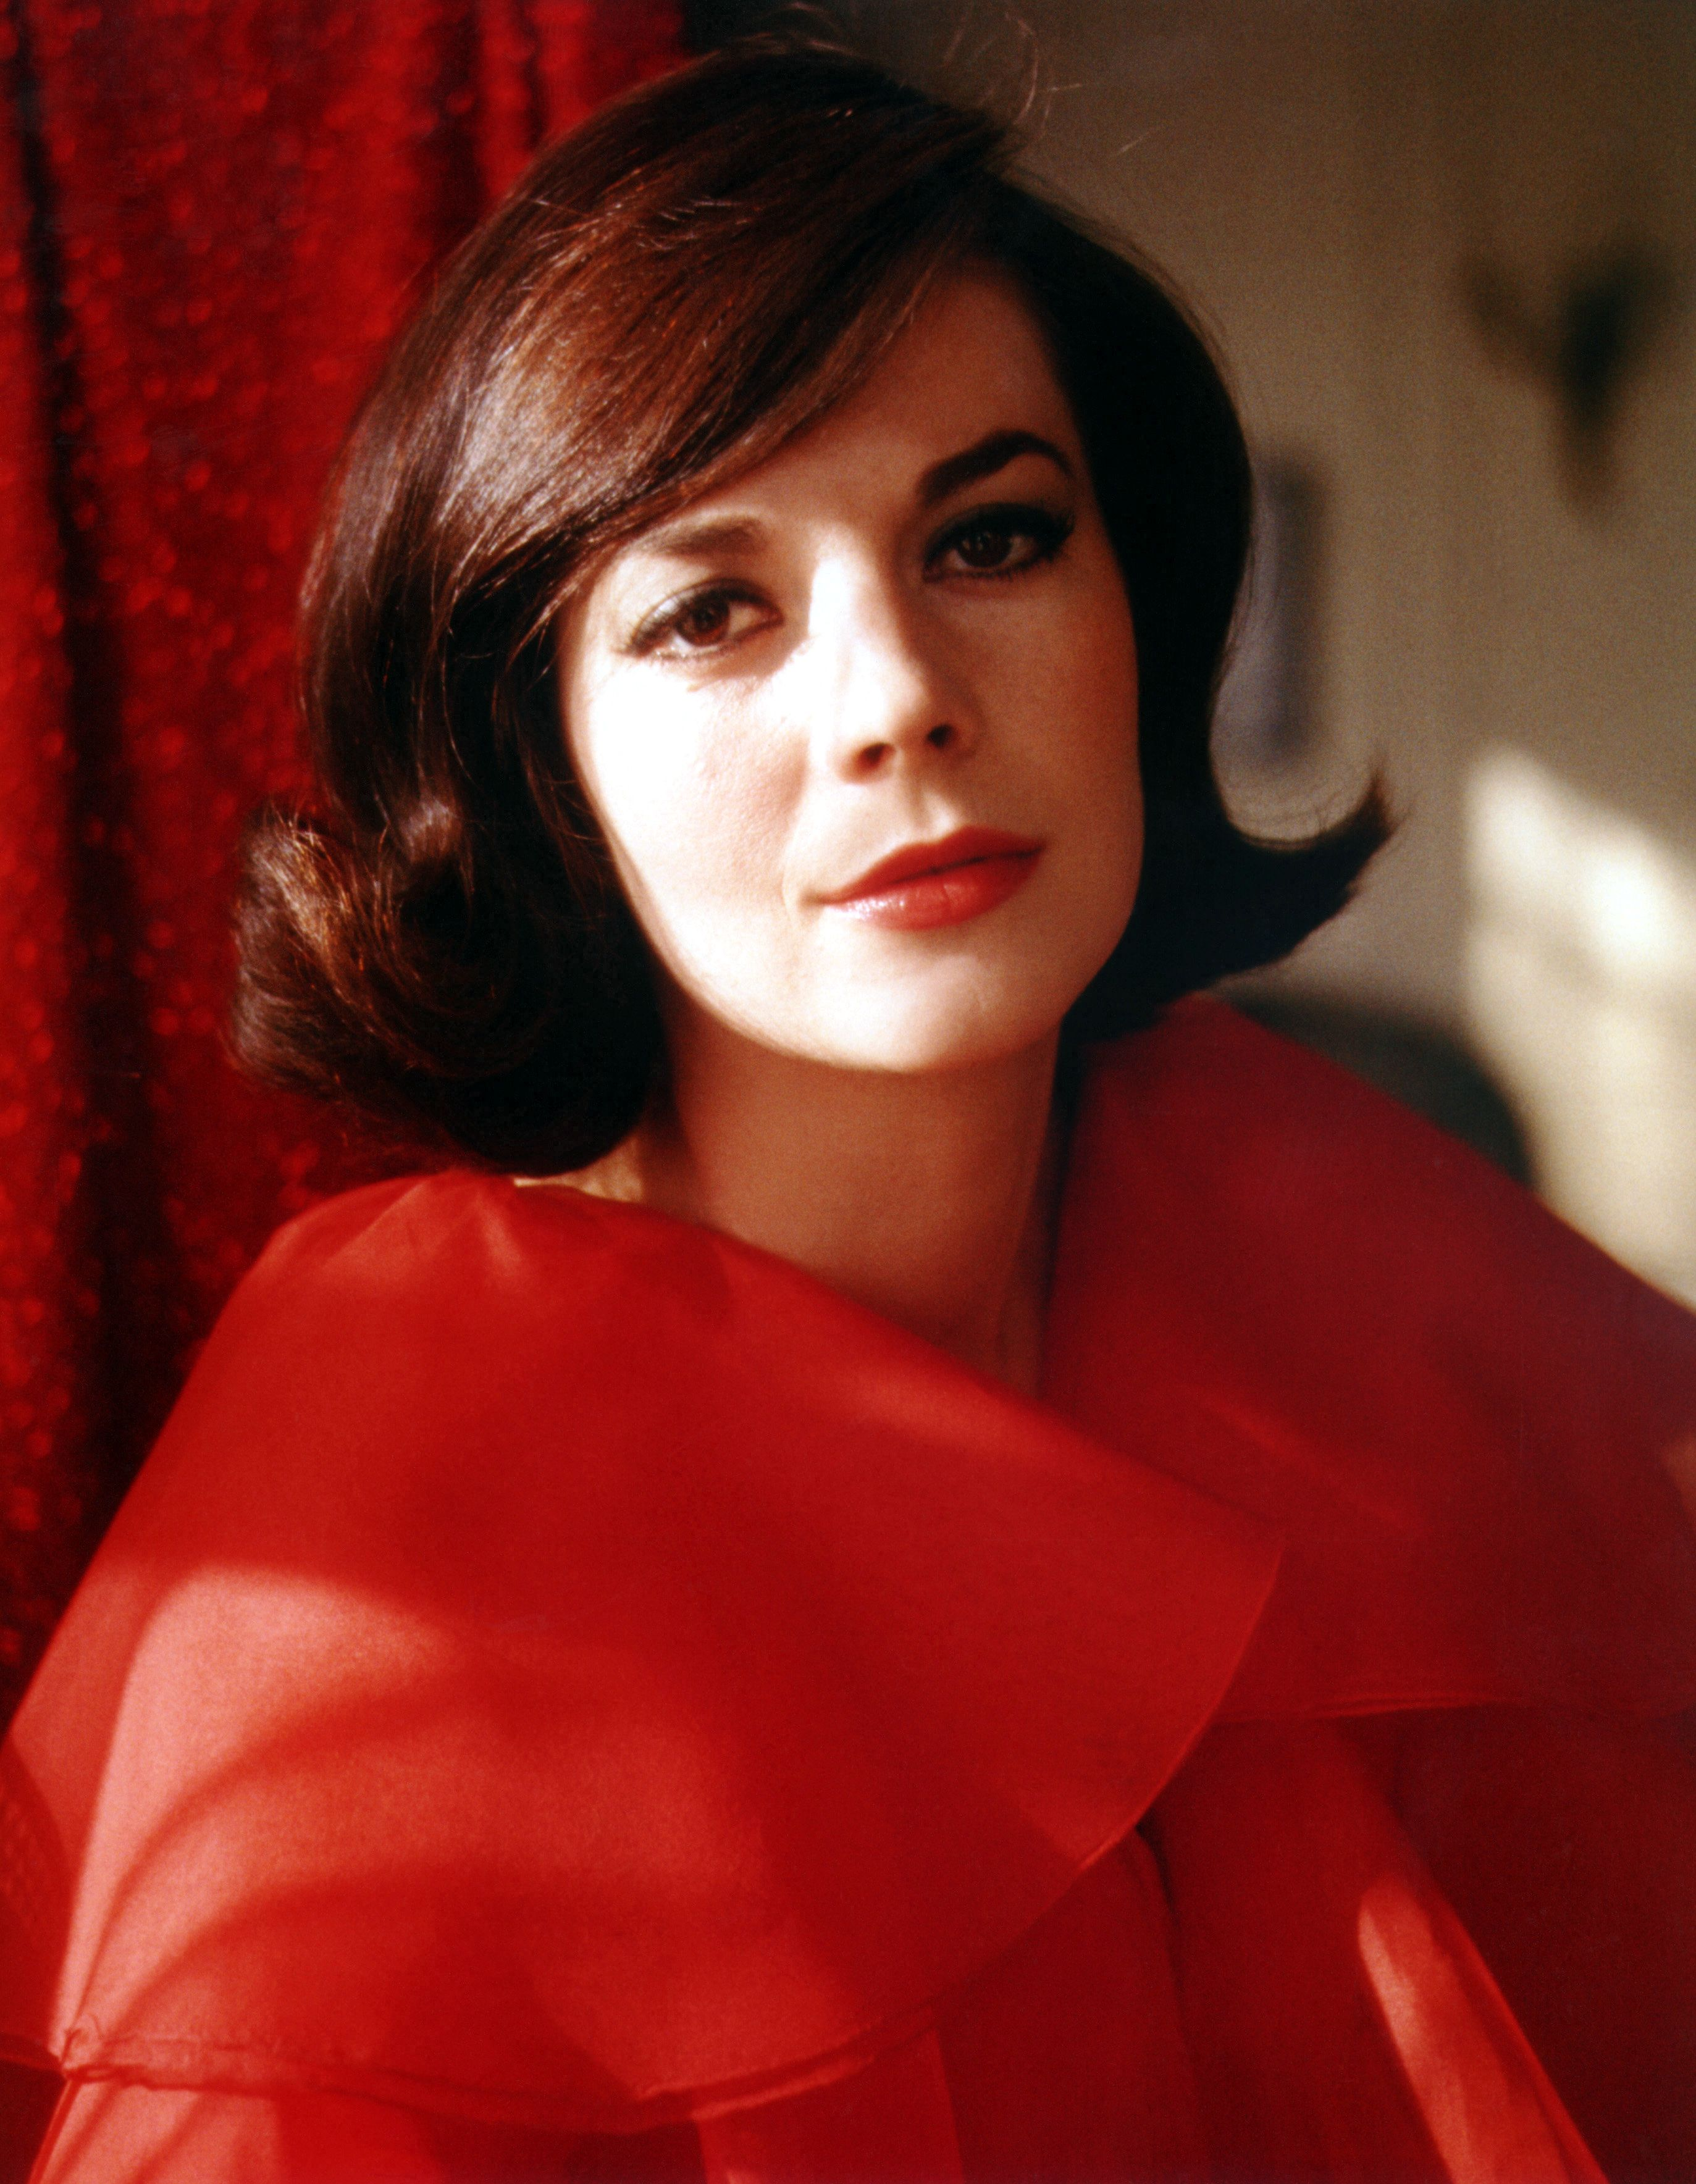 Celebrities who died young Photo: Natalie Wood | Natalie